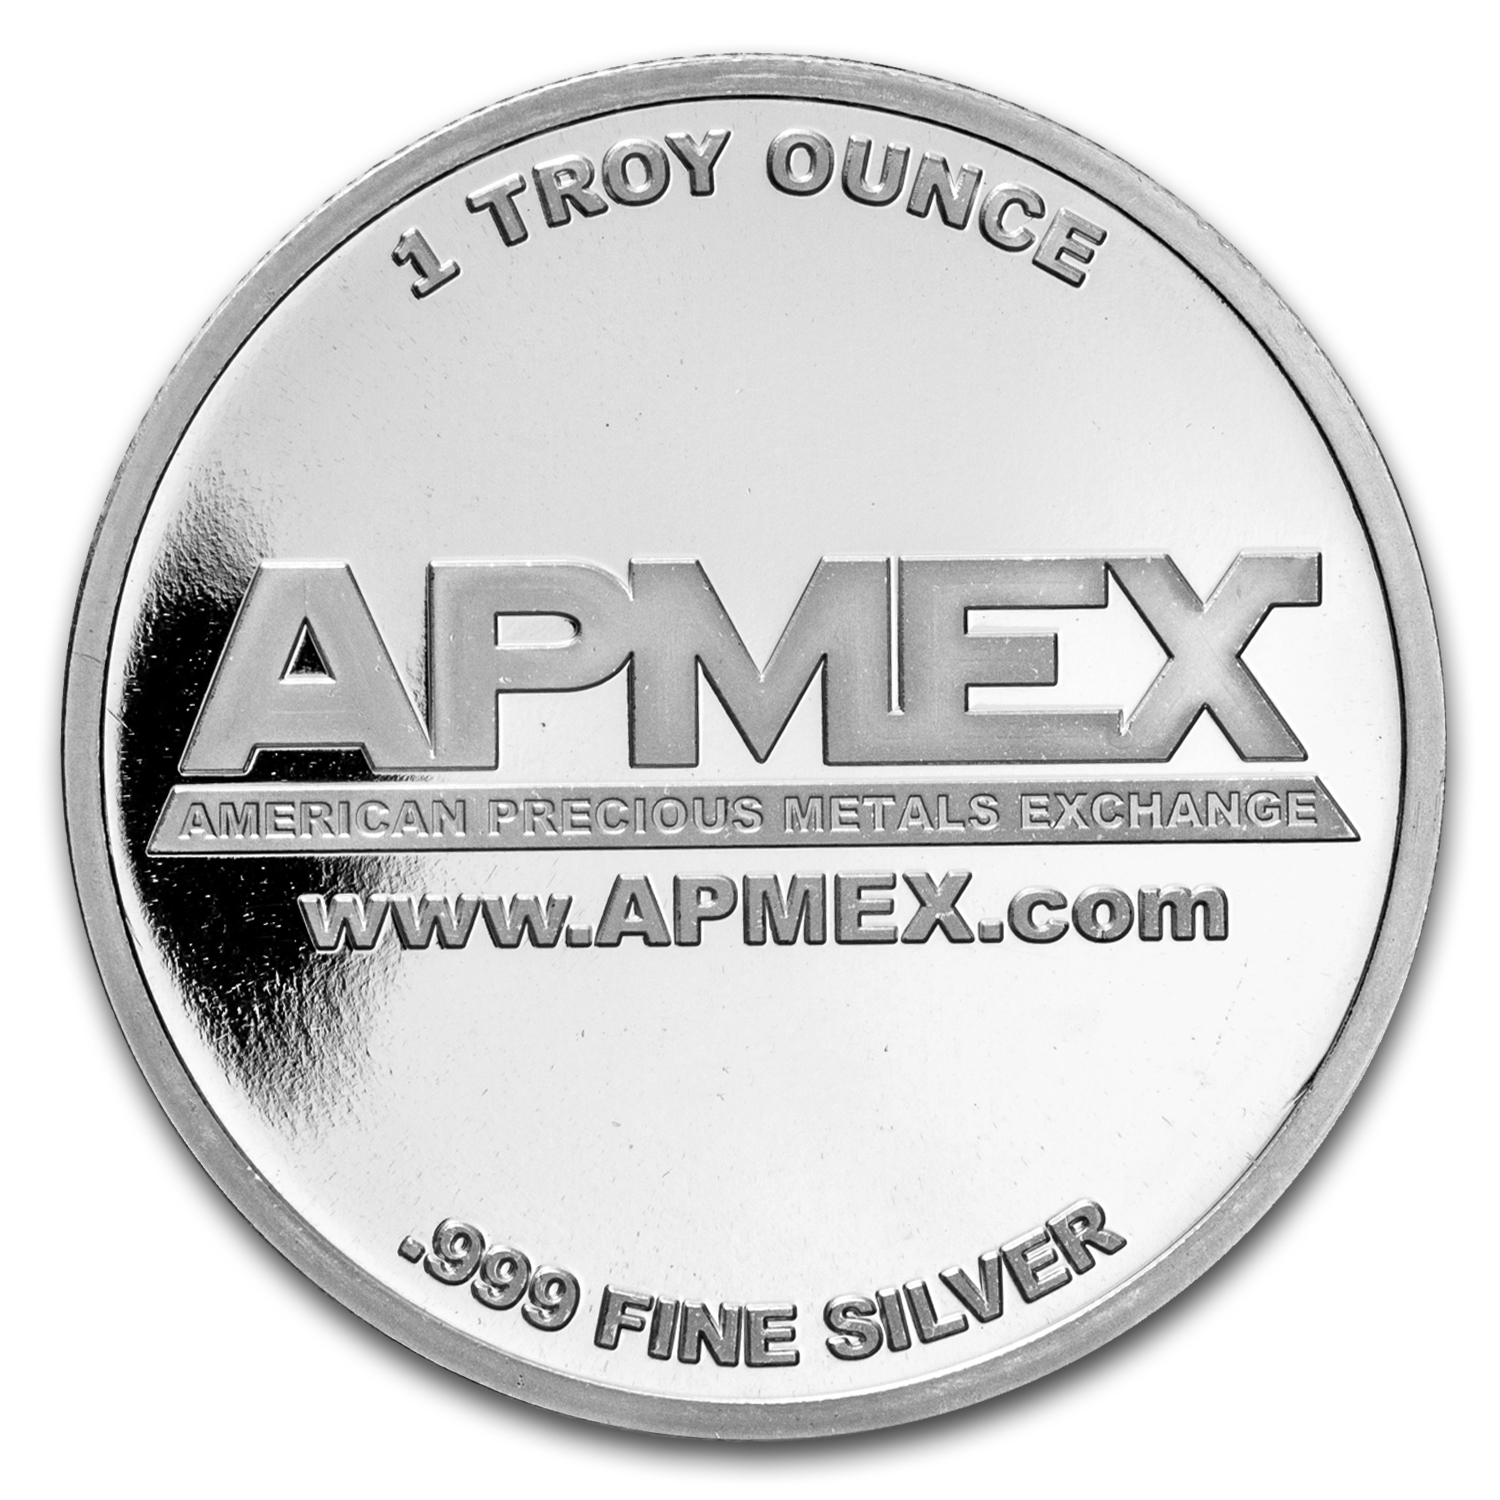 1 oz Silver Colorized Round - APMEX (Festive Season's Greetings)